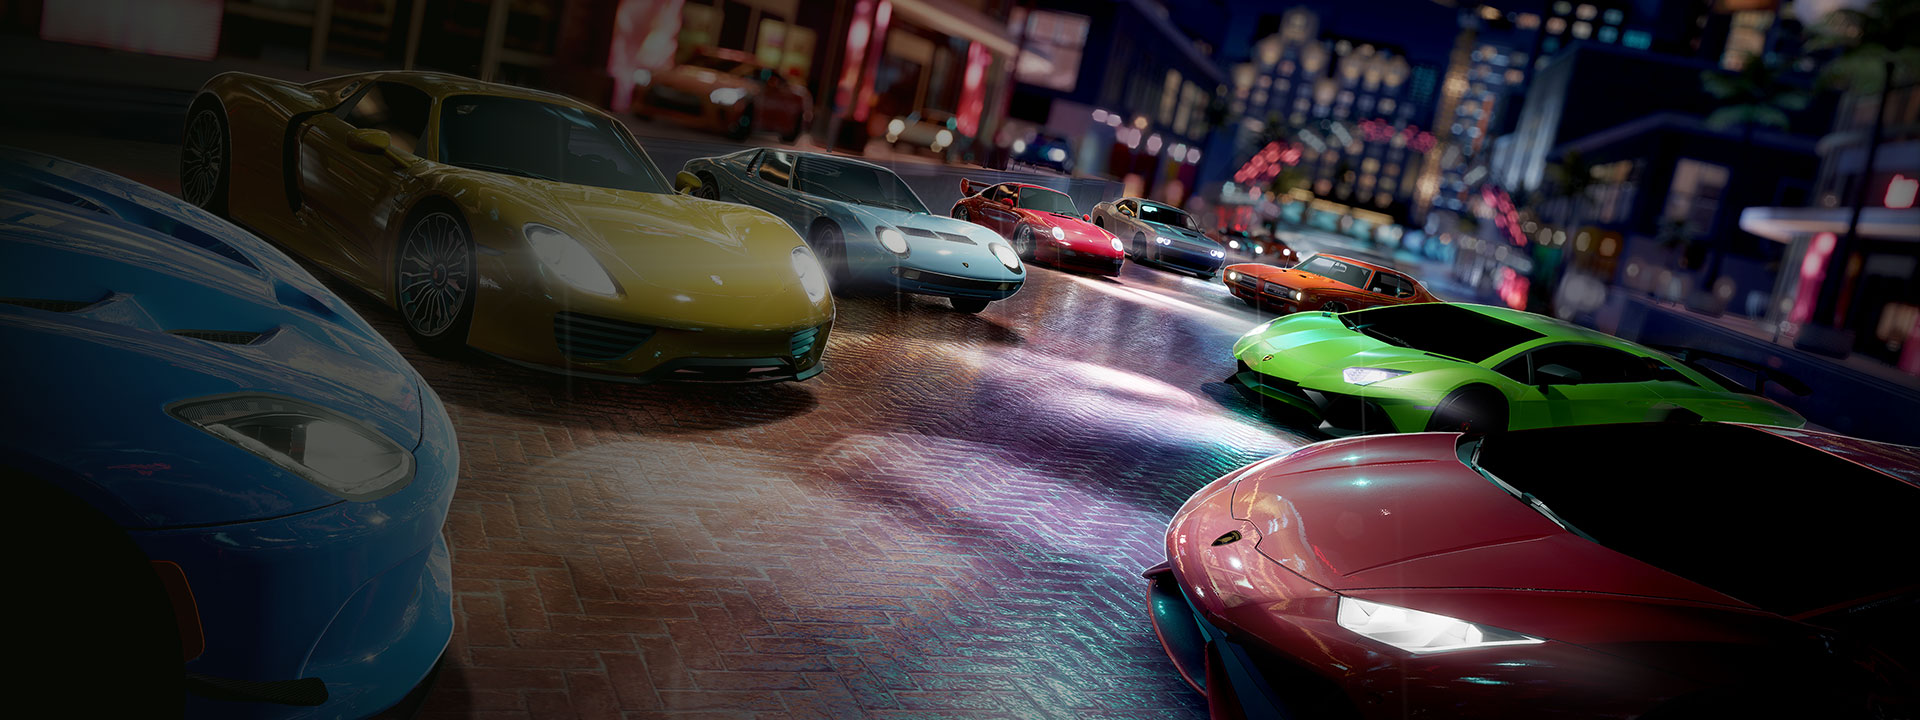 Lineup of sports cars on a colorful street at night